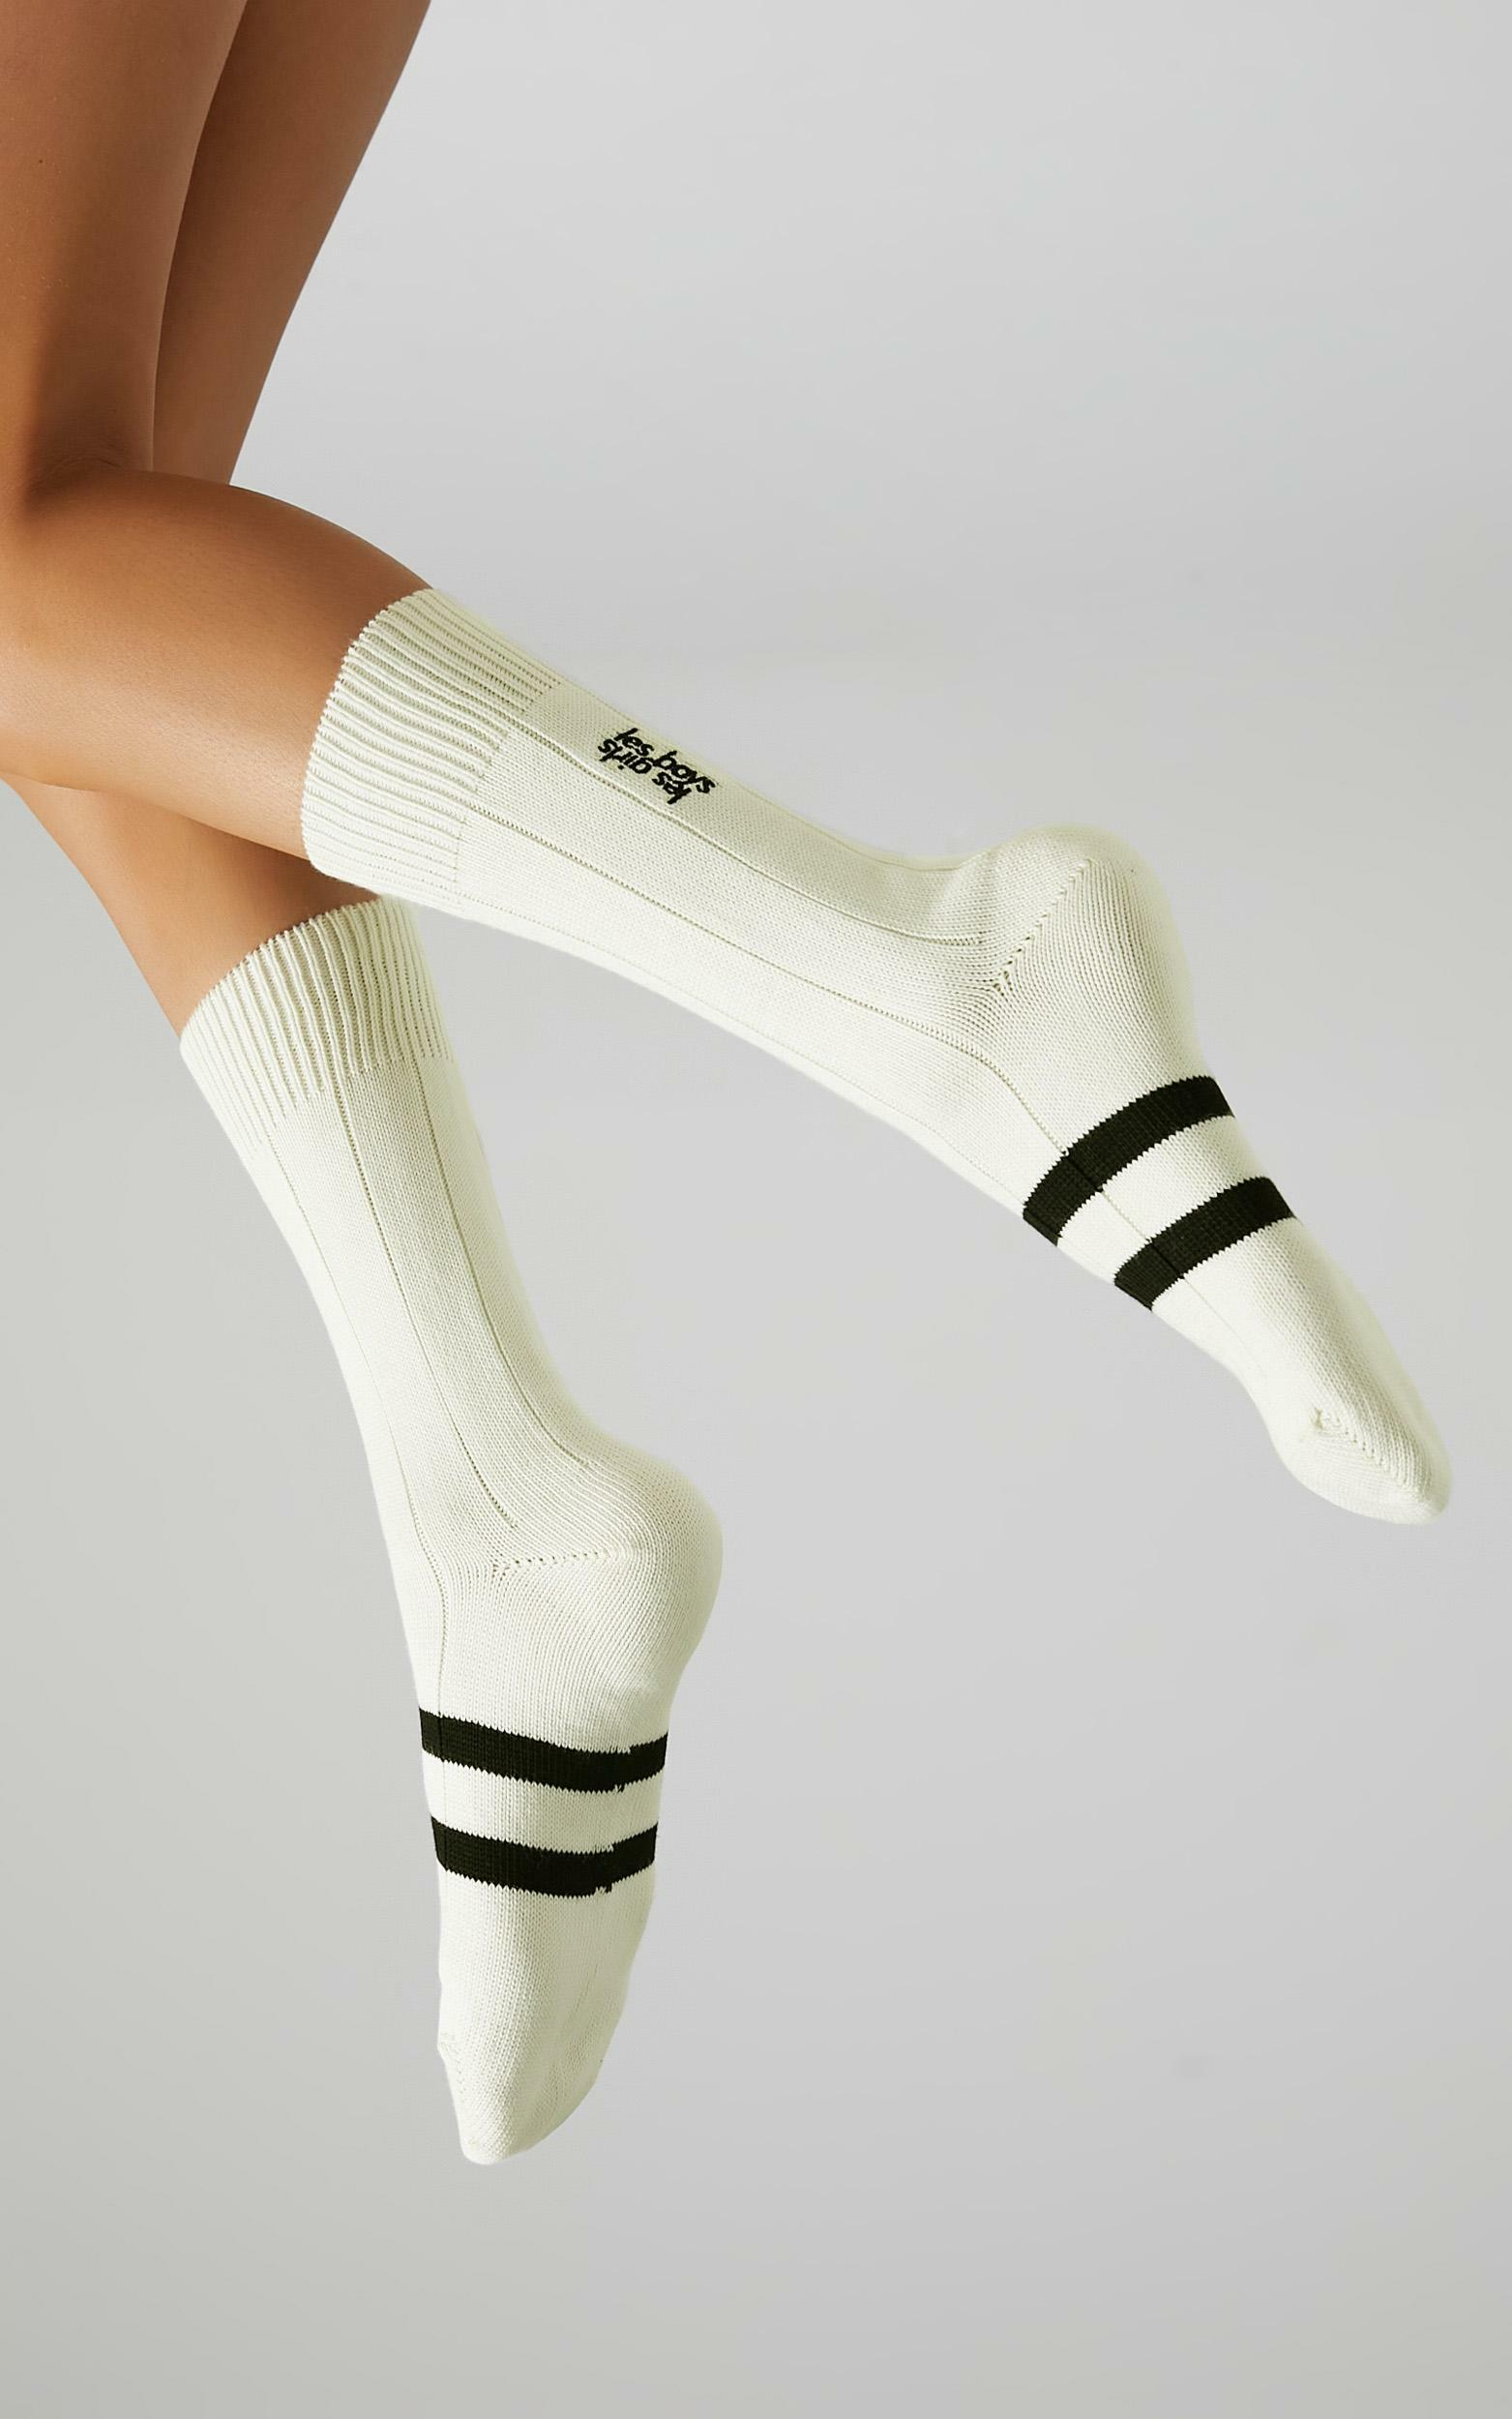 Les Girls Les Boys - Mid Calf Sock in Off White - S, WHT3, hi-res image number null